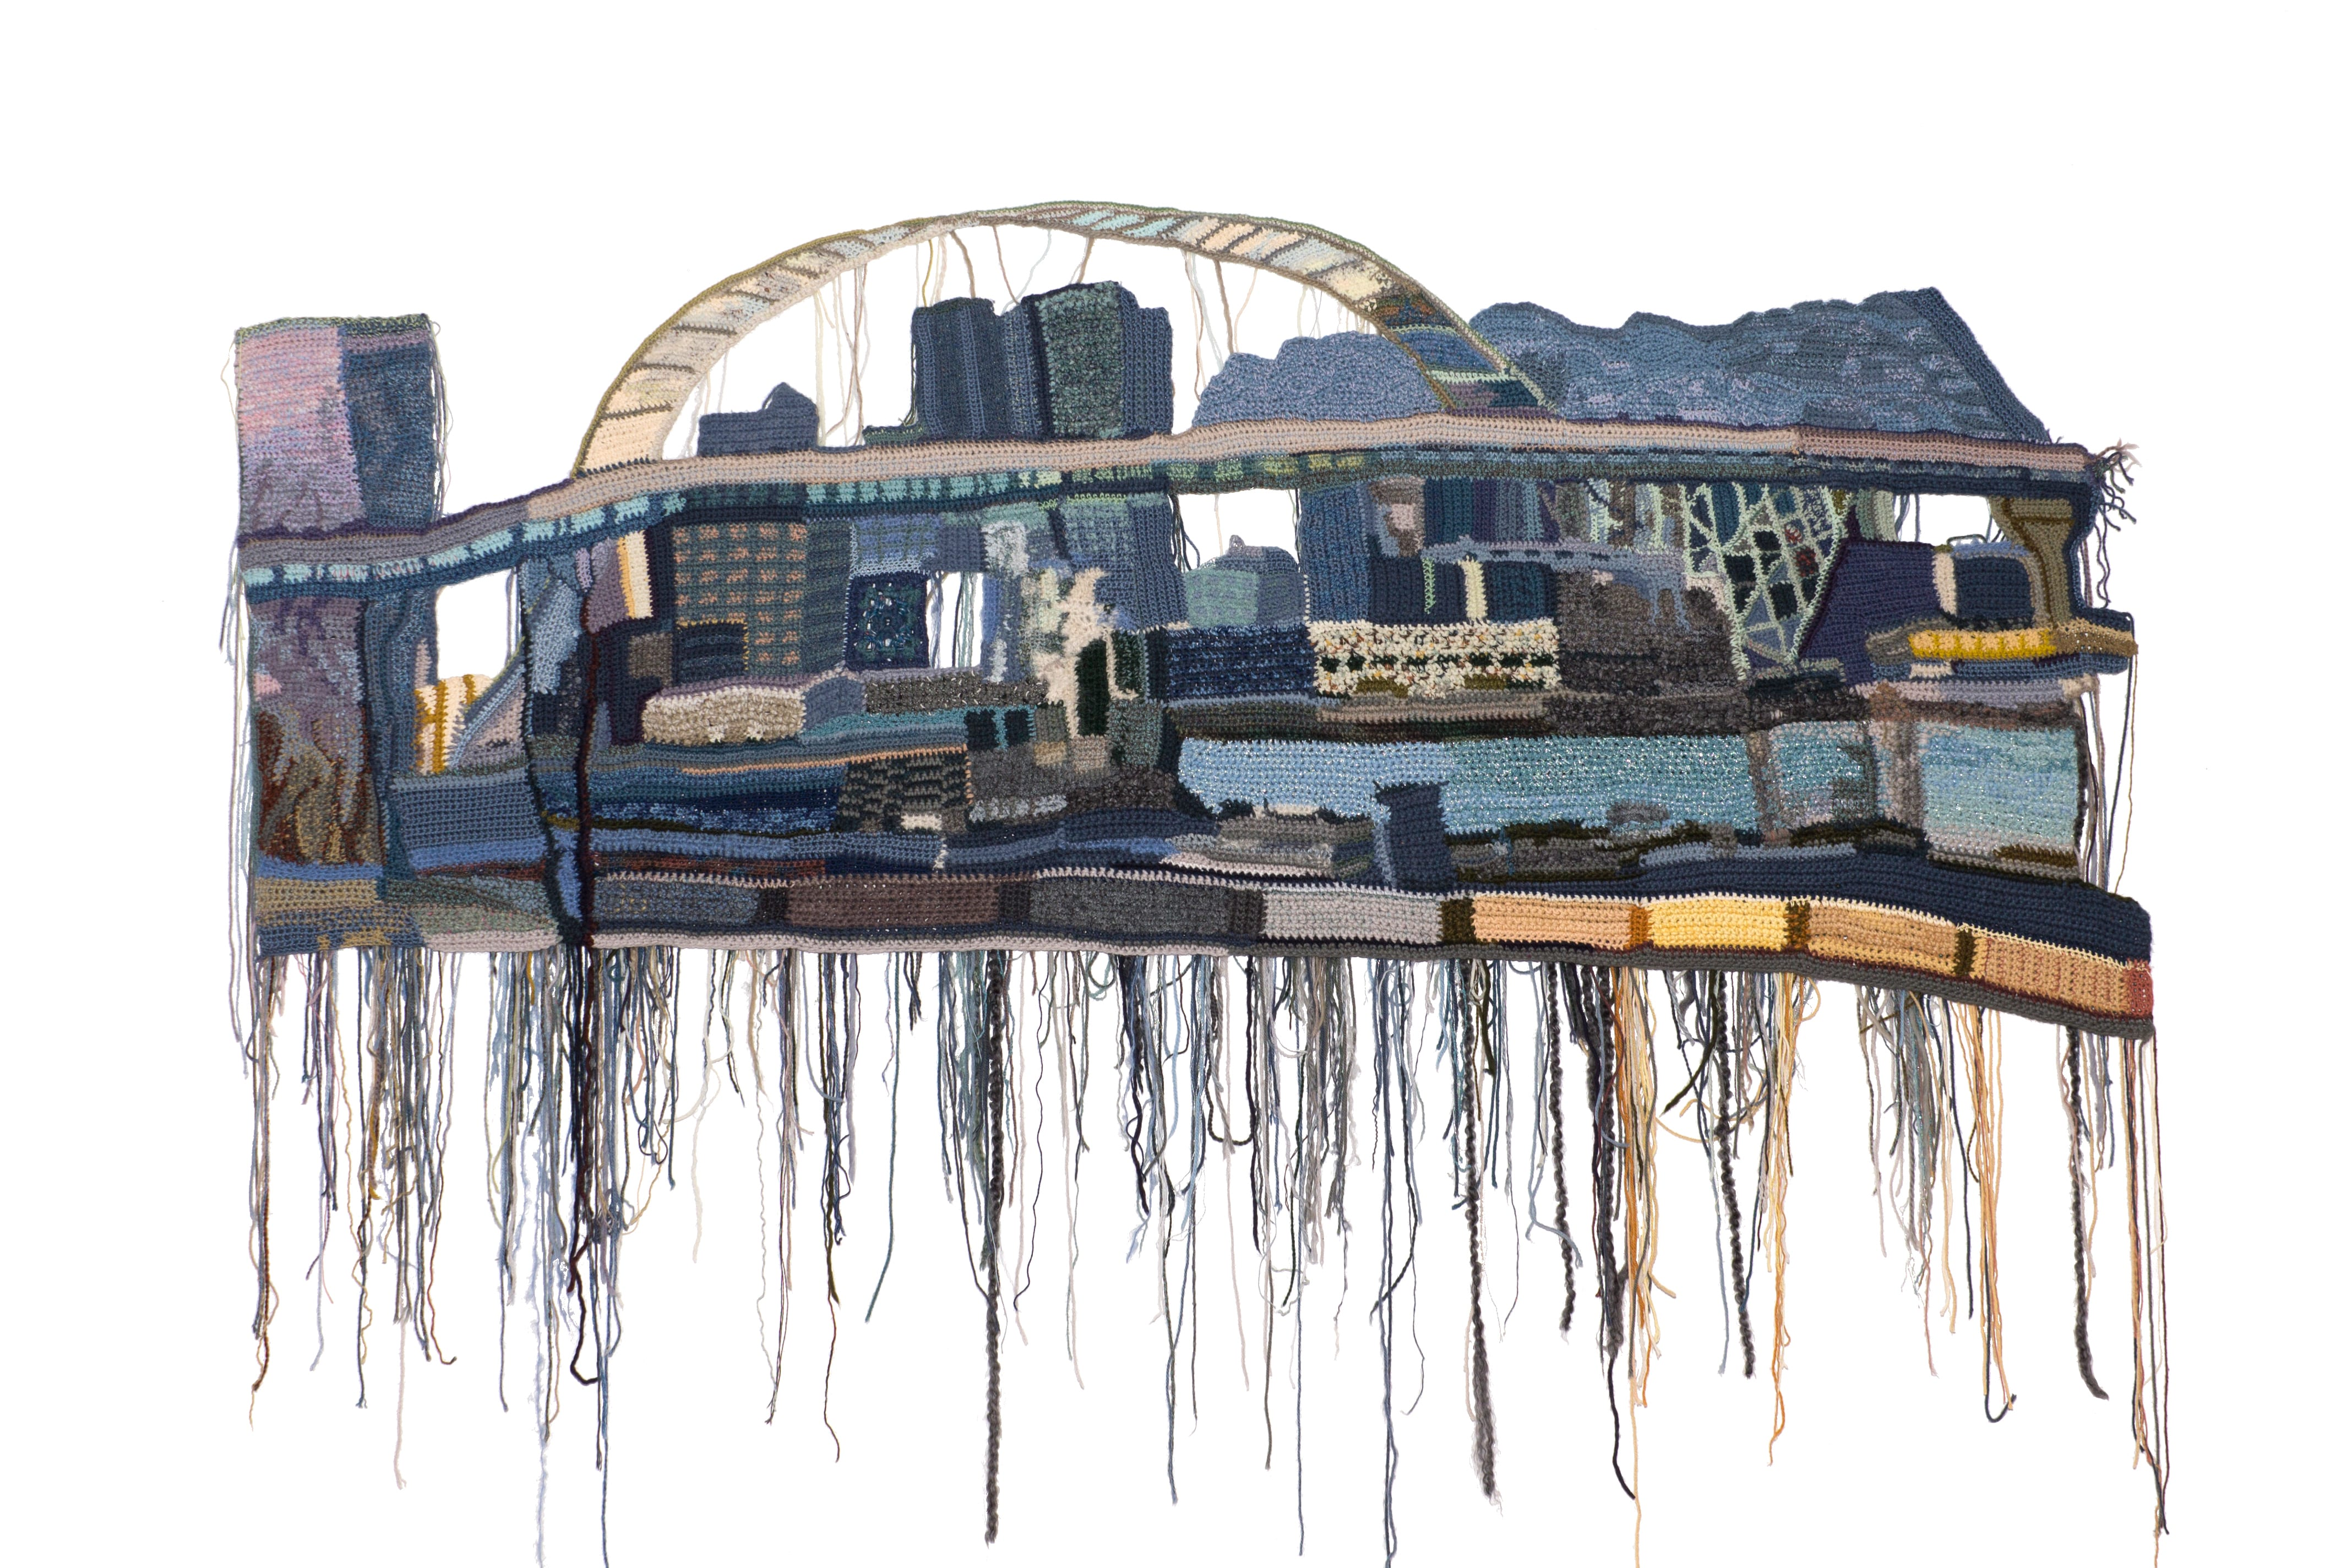 EitherSideof theFremont_31x70 inches_2016